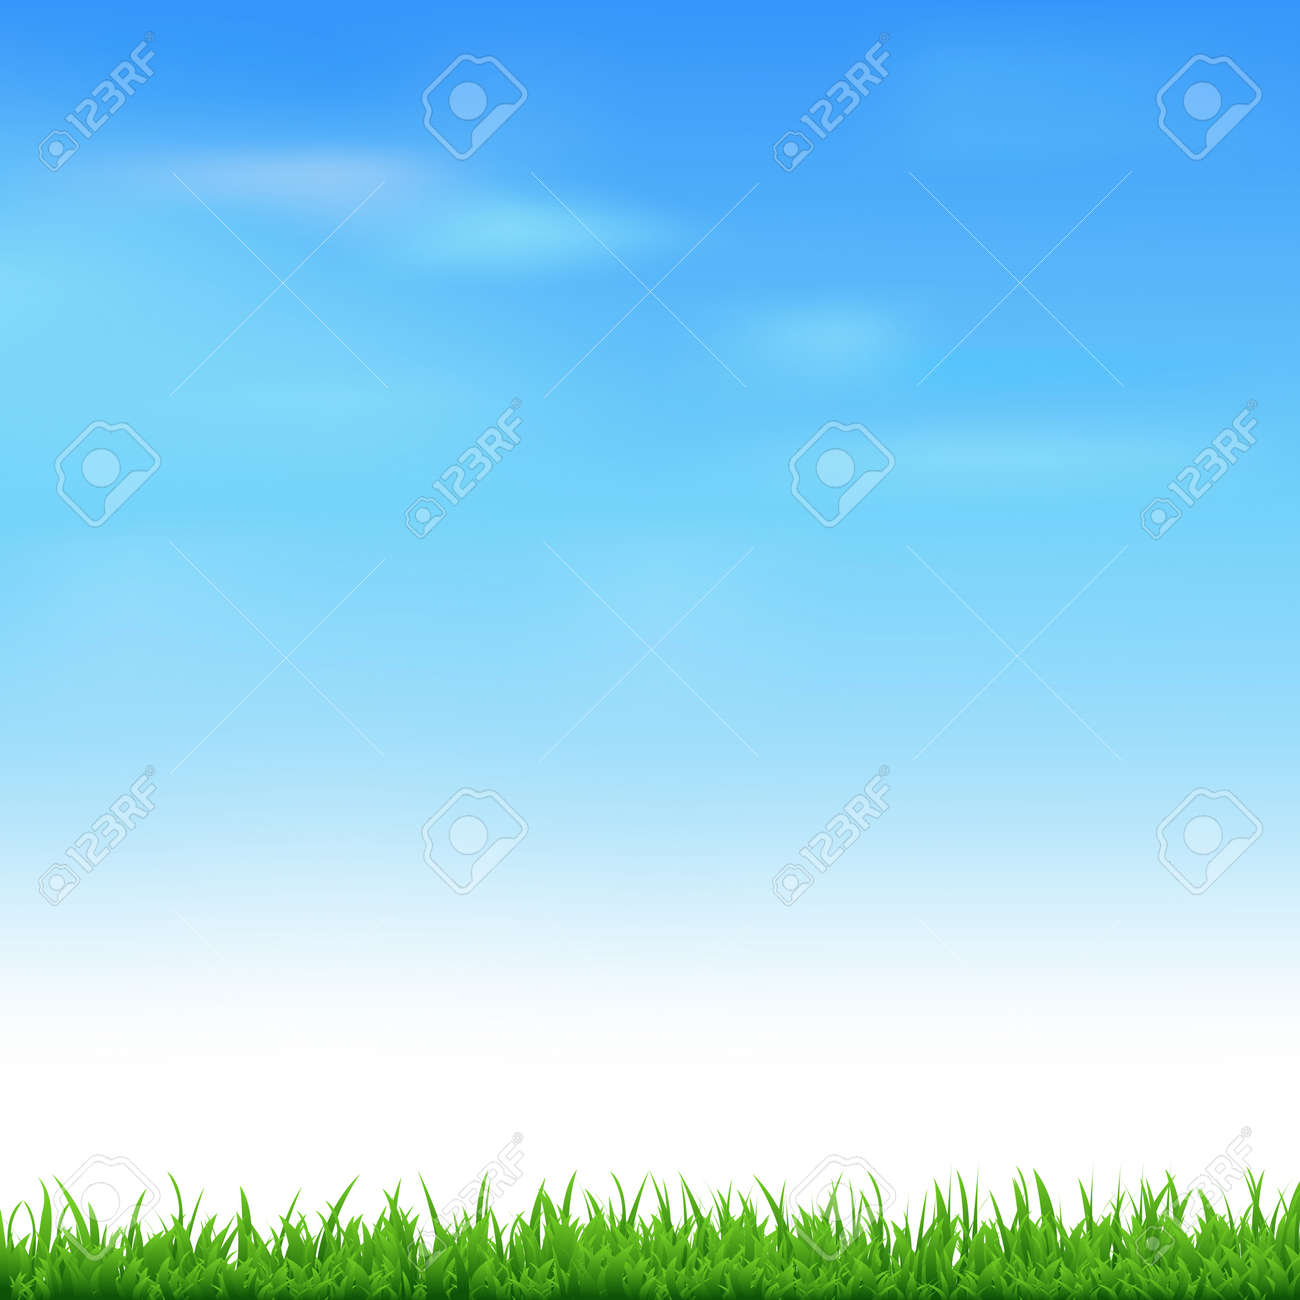 Landscape With Grass - 165527864